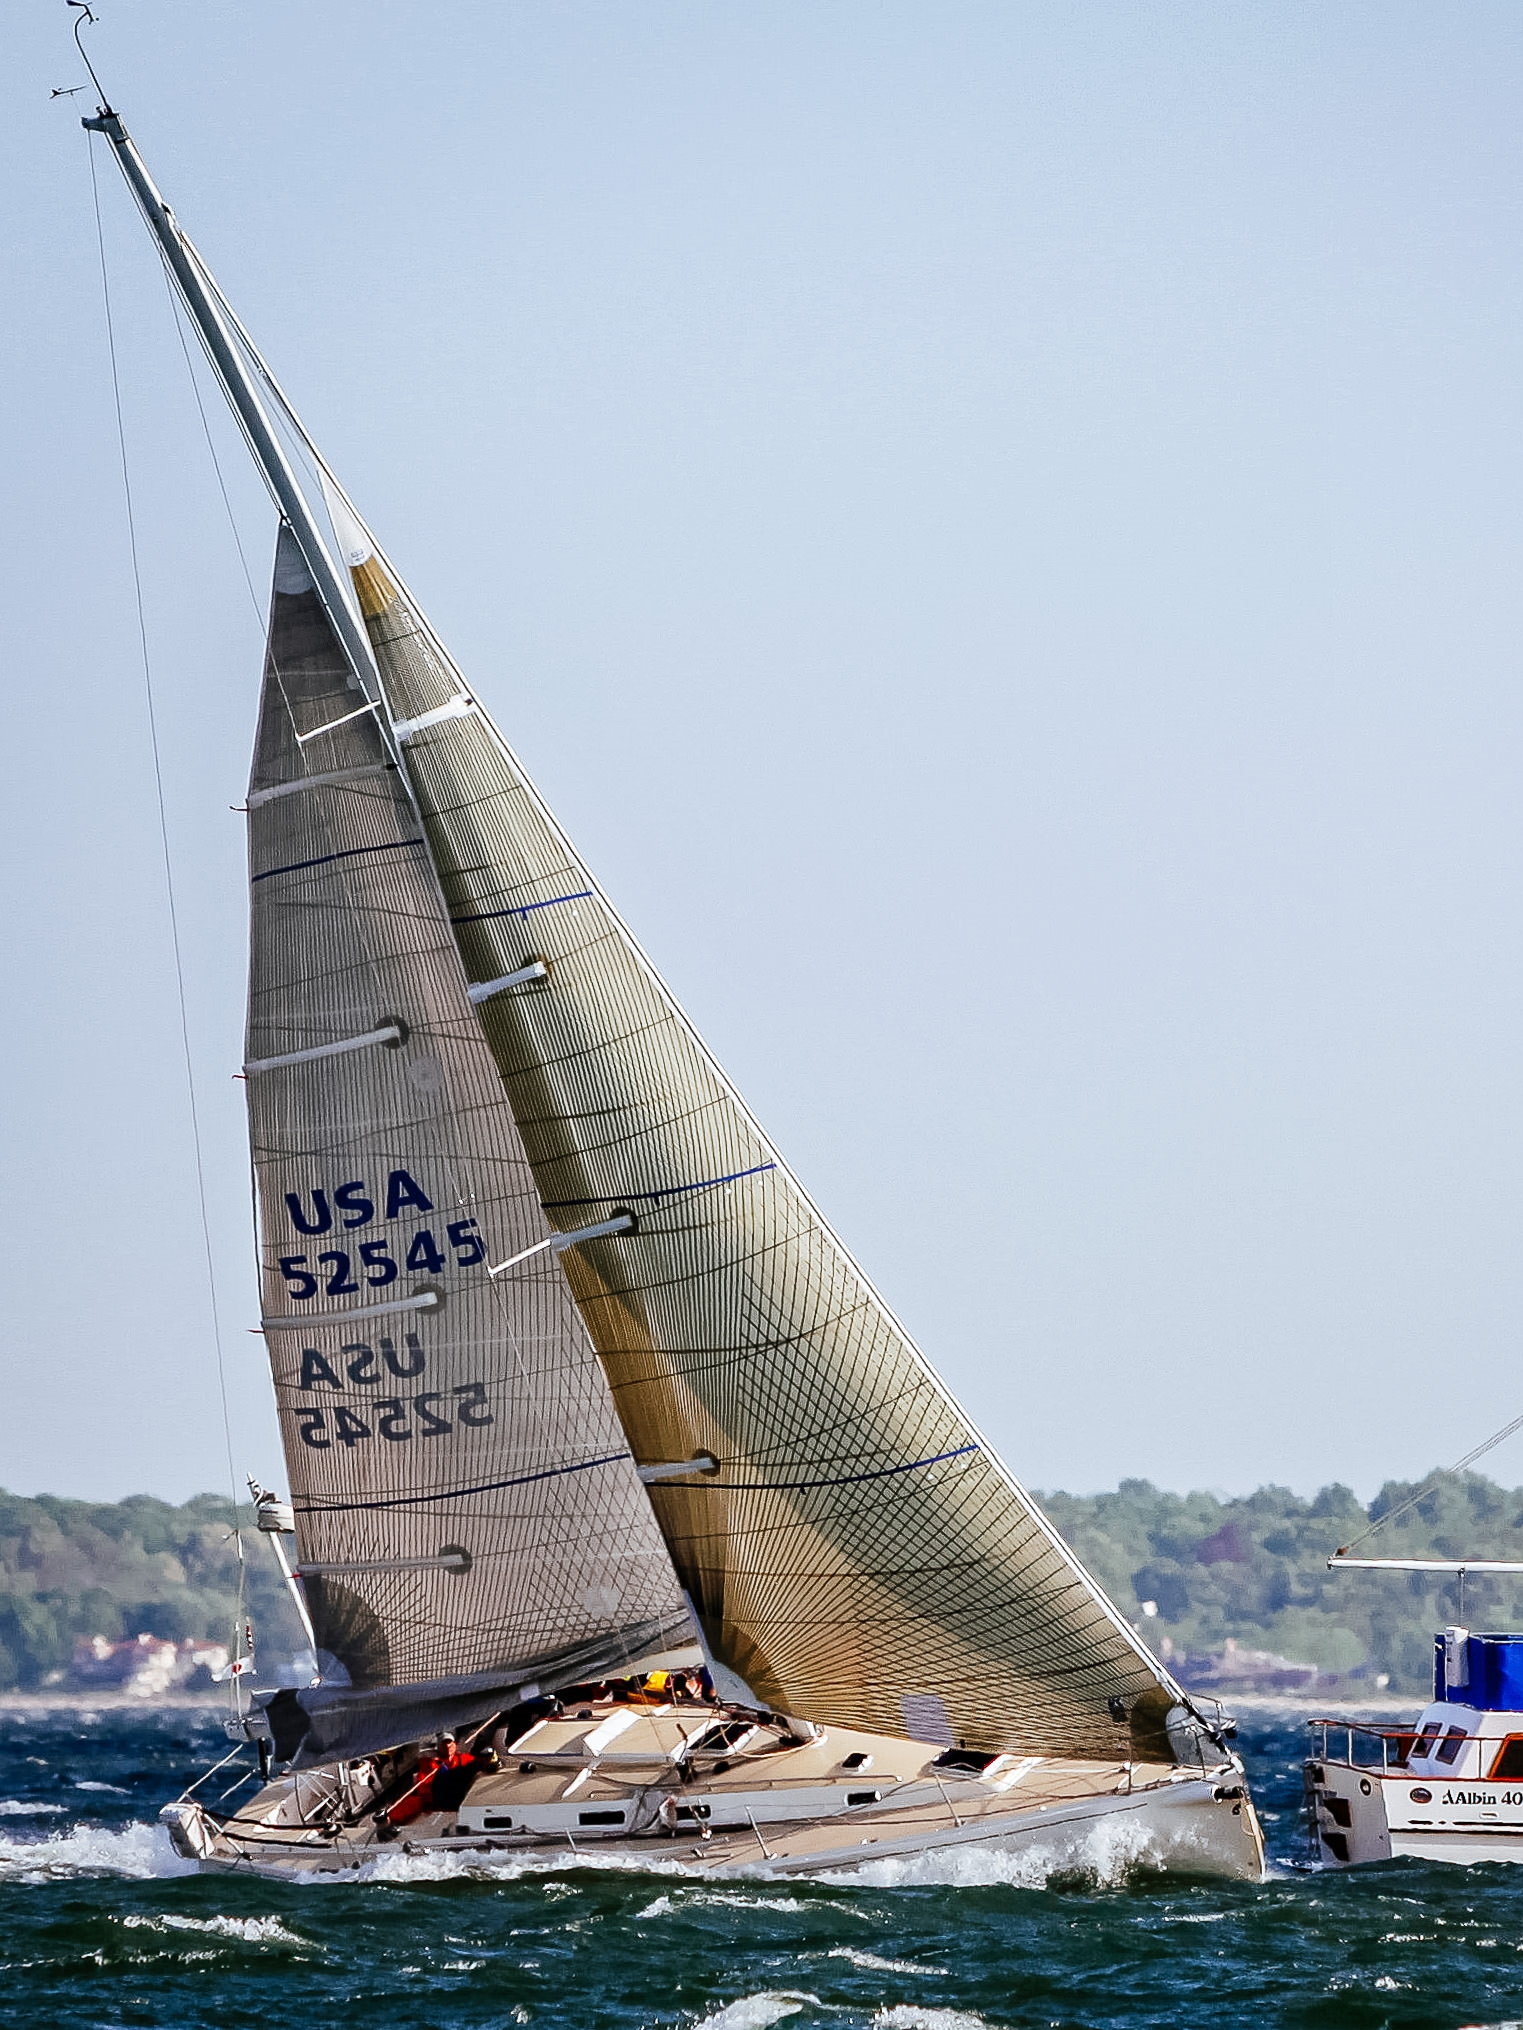 A J/133 finishing a race in 40 knots with a Tape-Drive Carbon/Aramid No. 4 and two reefs.